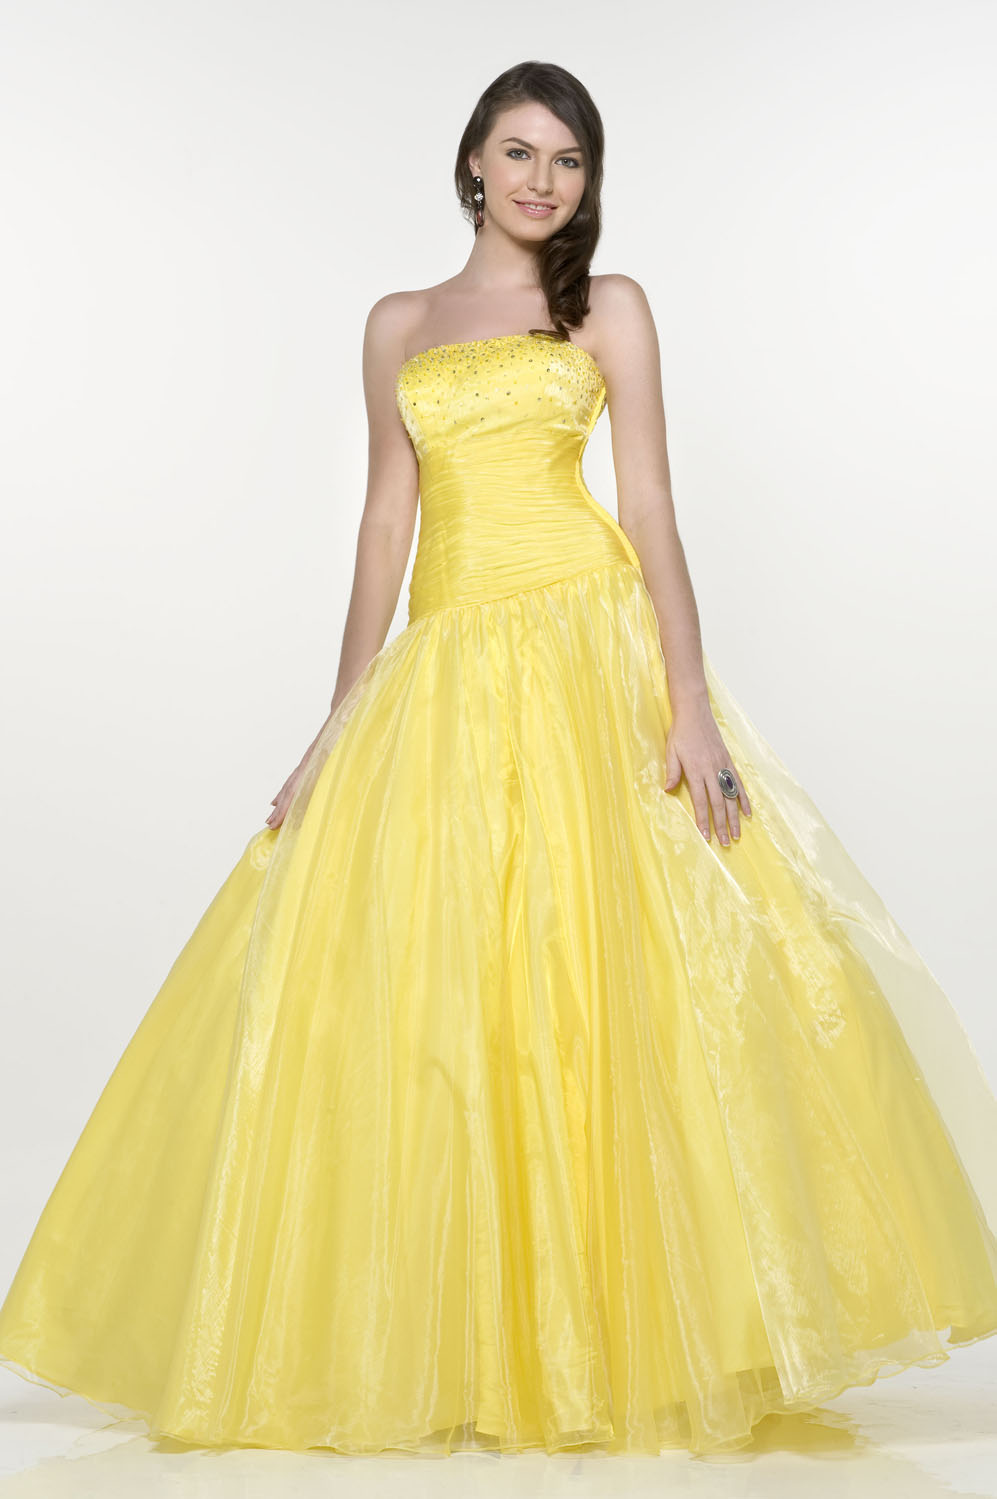 Turn your eyes to Yellow Gown - 24 Dressi